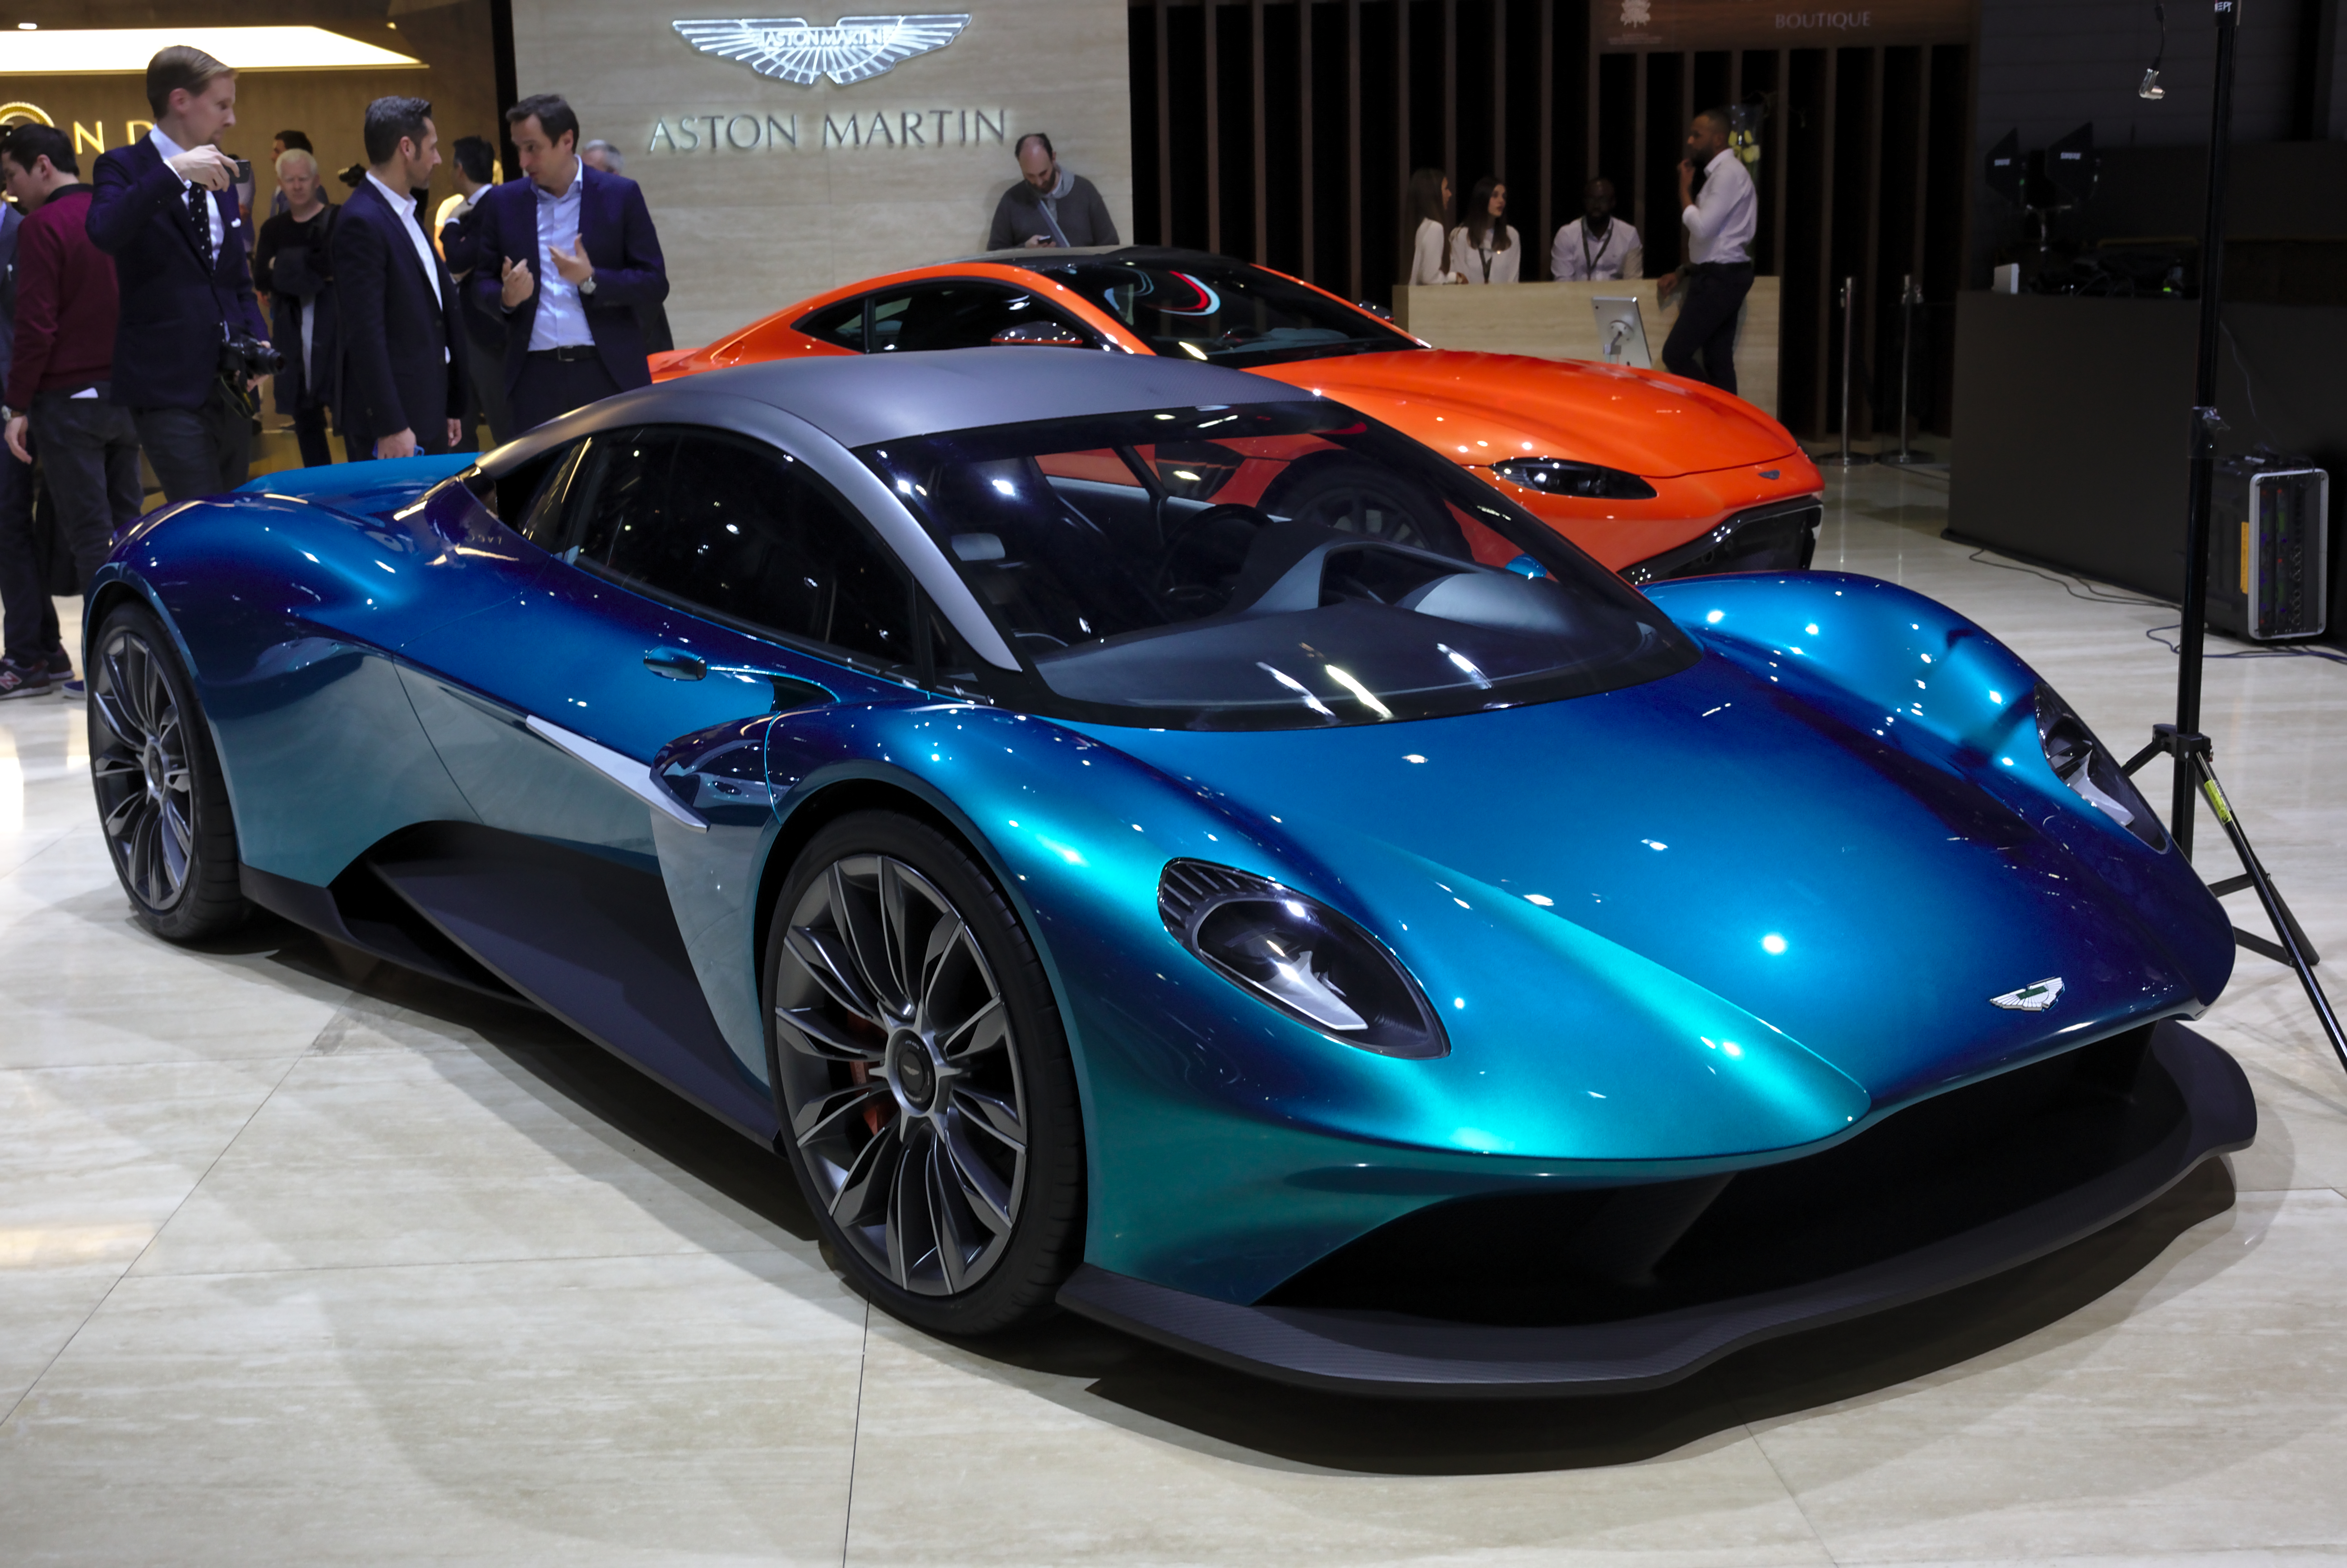 File Aston Martin Vanquish Vision Concept Genf 2019 1y7a5488 Jpg Wikimedia Commons